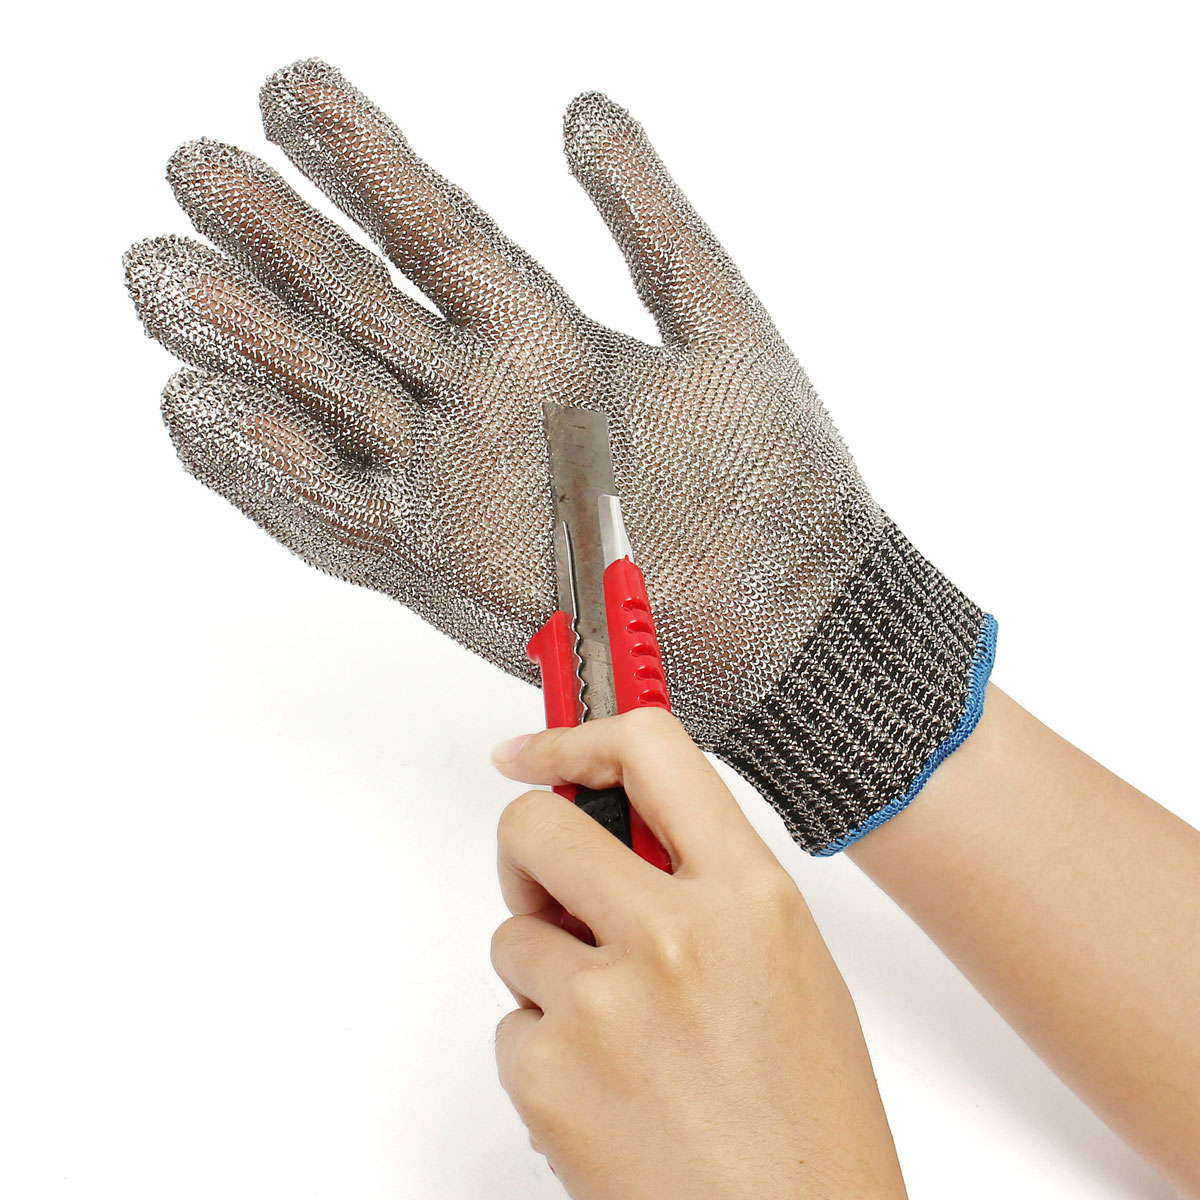 Safety Cut Proof Stab Resistant Stainless Steel Metal Mesh Butcher Gloves 2016 new fireproof glovesaby 5t with 500 degrees high temperature resistant gloves wear cut proof gloves